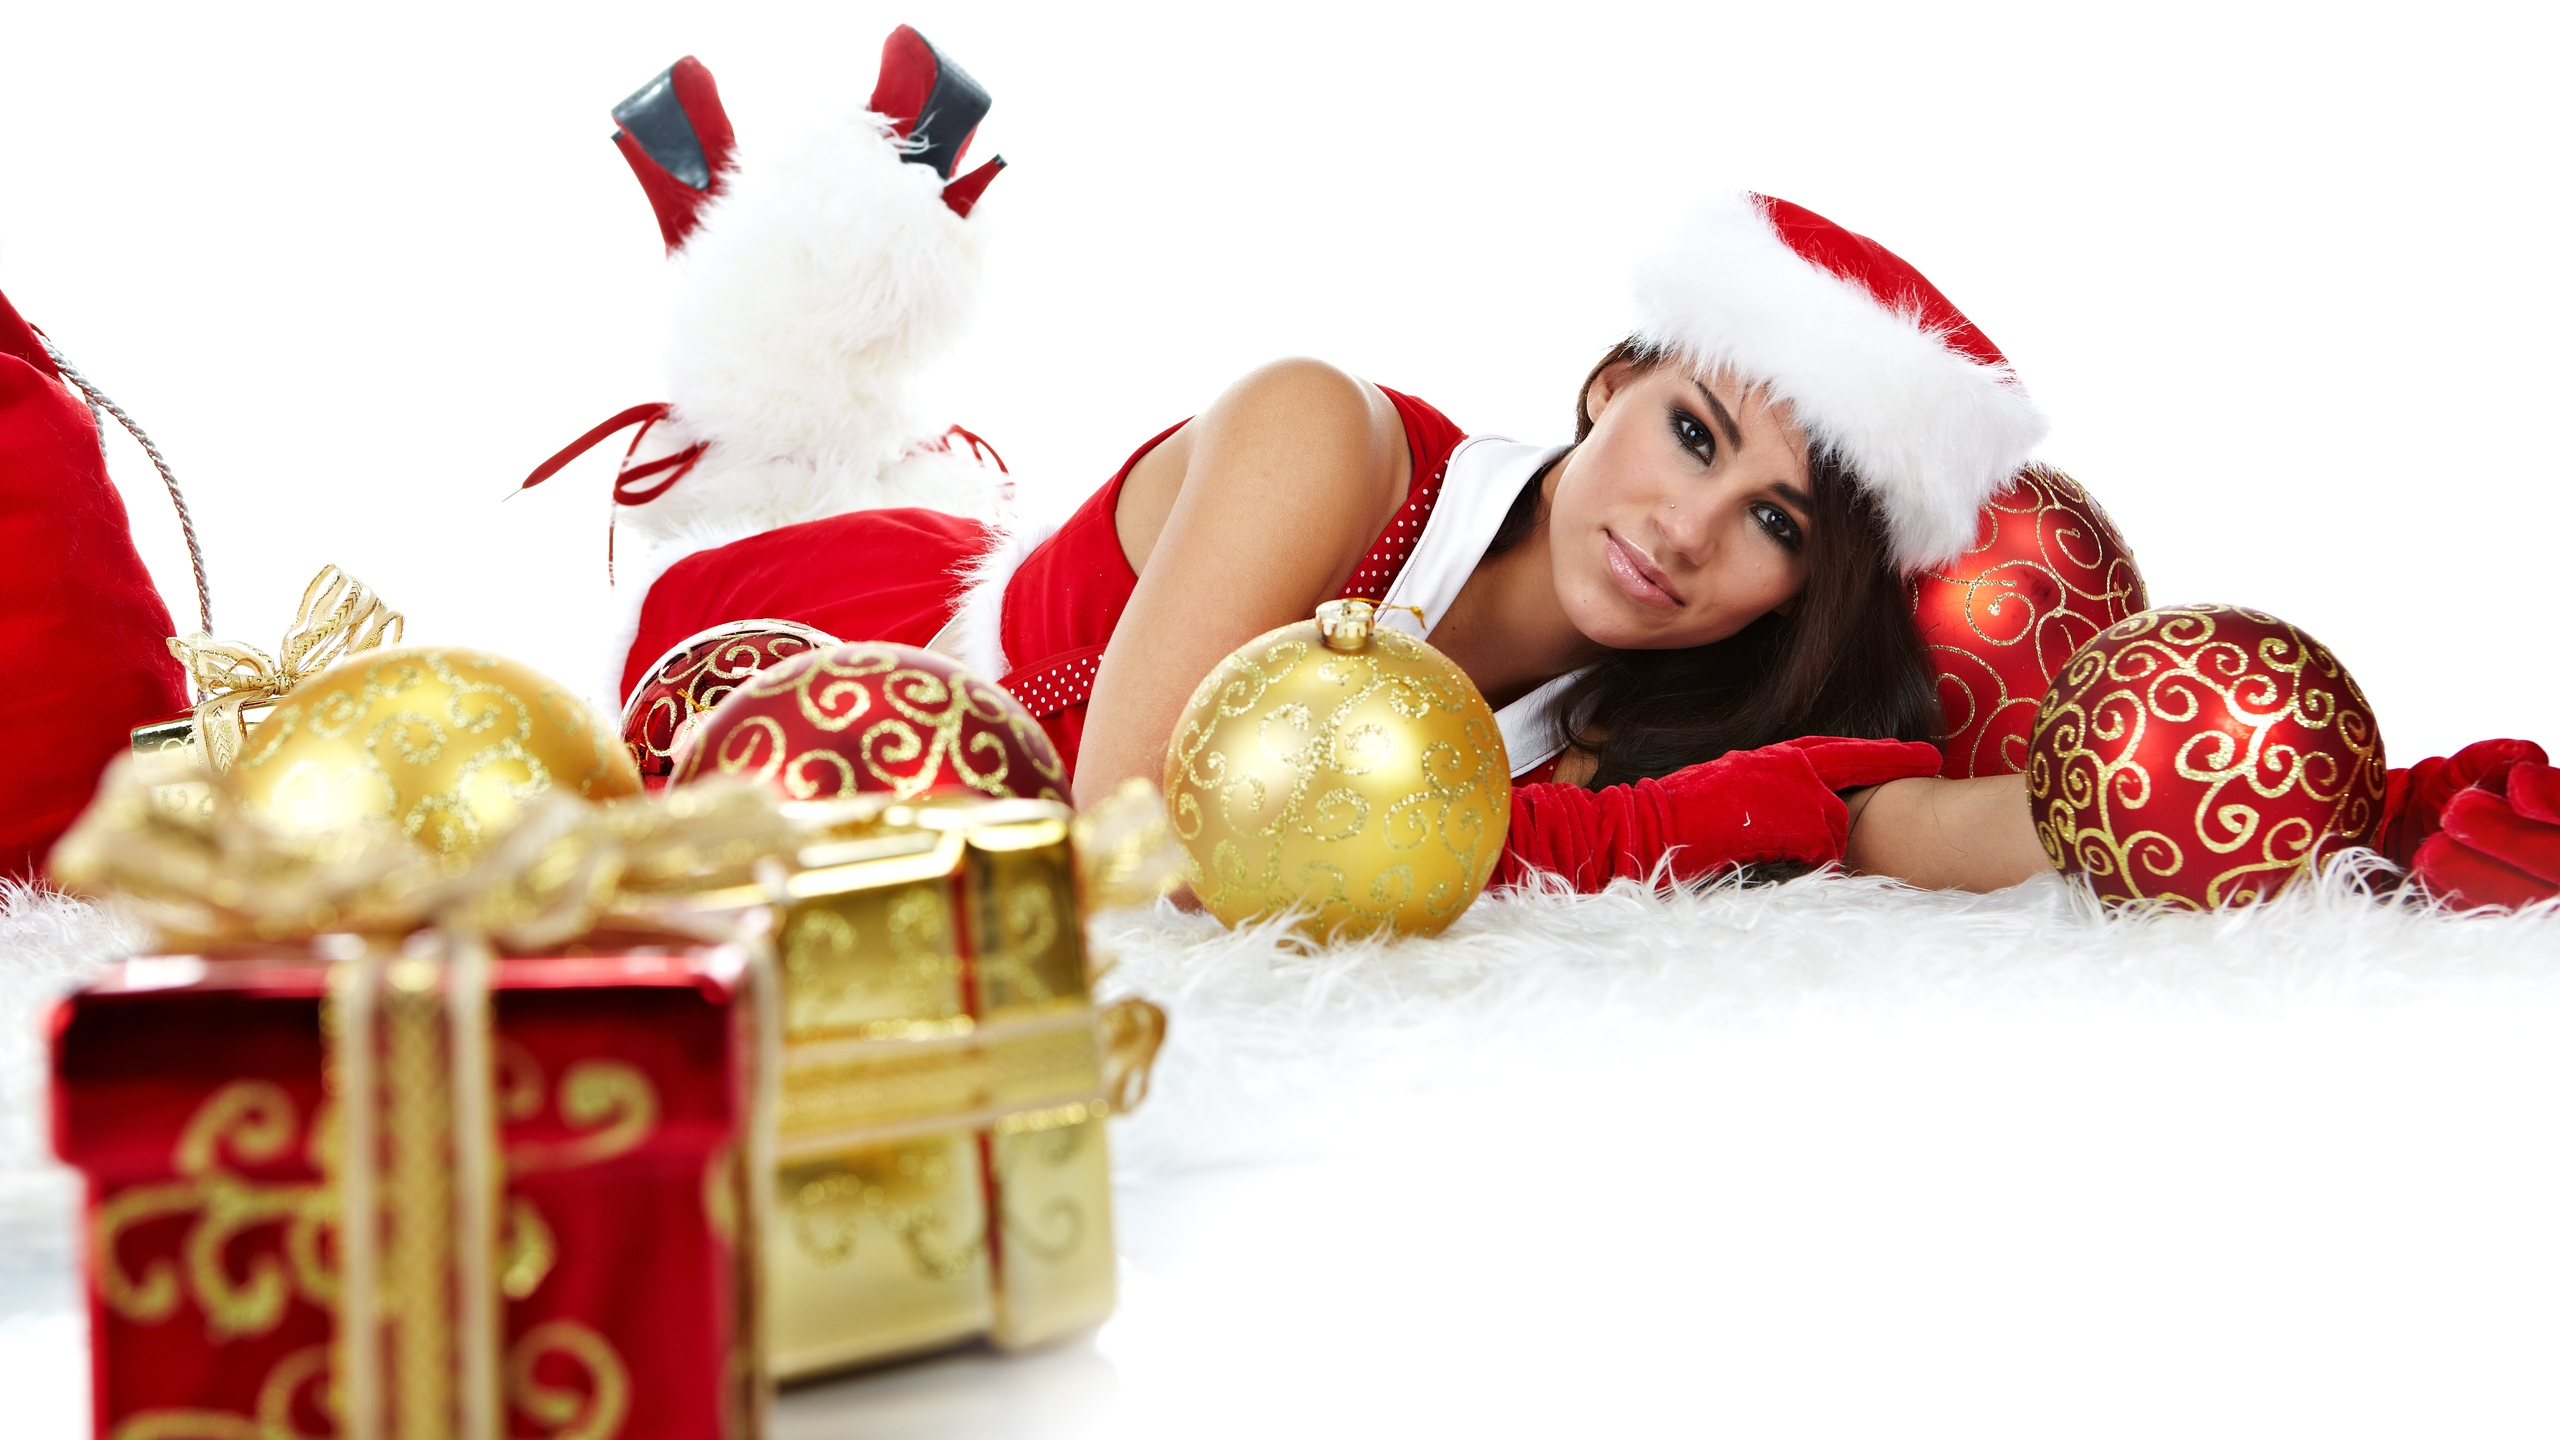 Santa Babe for 2560x1440 HDTV resolution